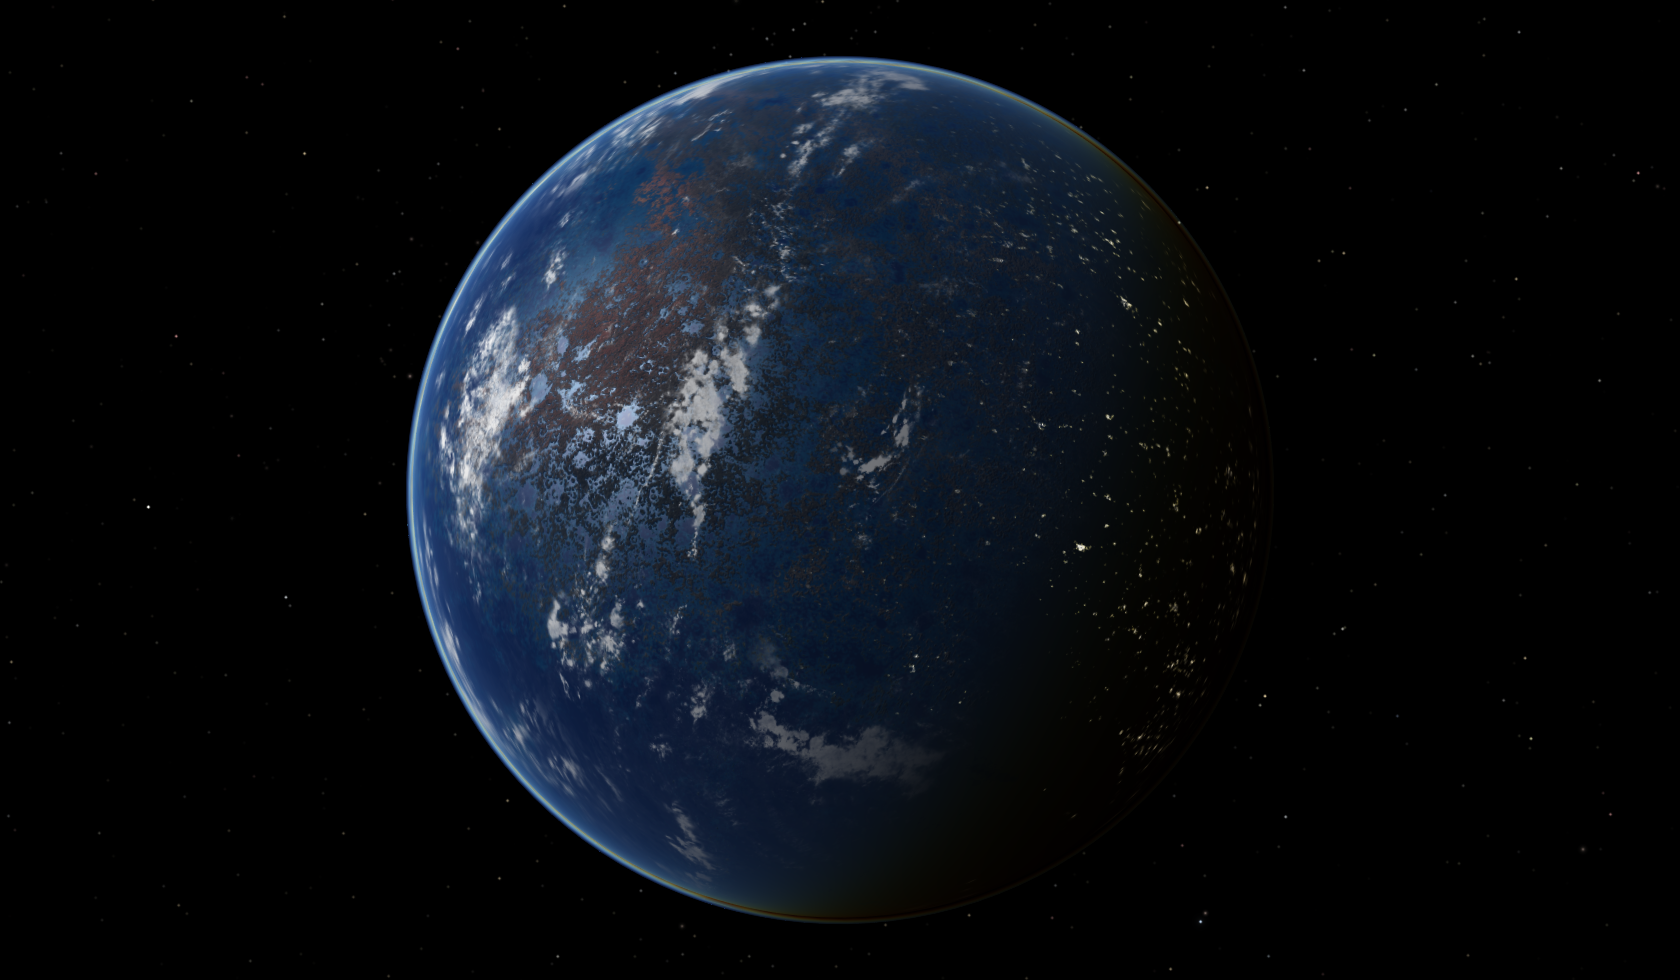 terraformed asteroids - photo #41